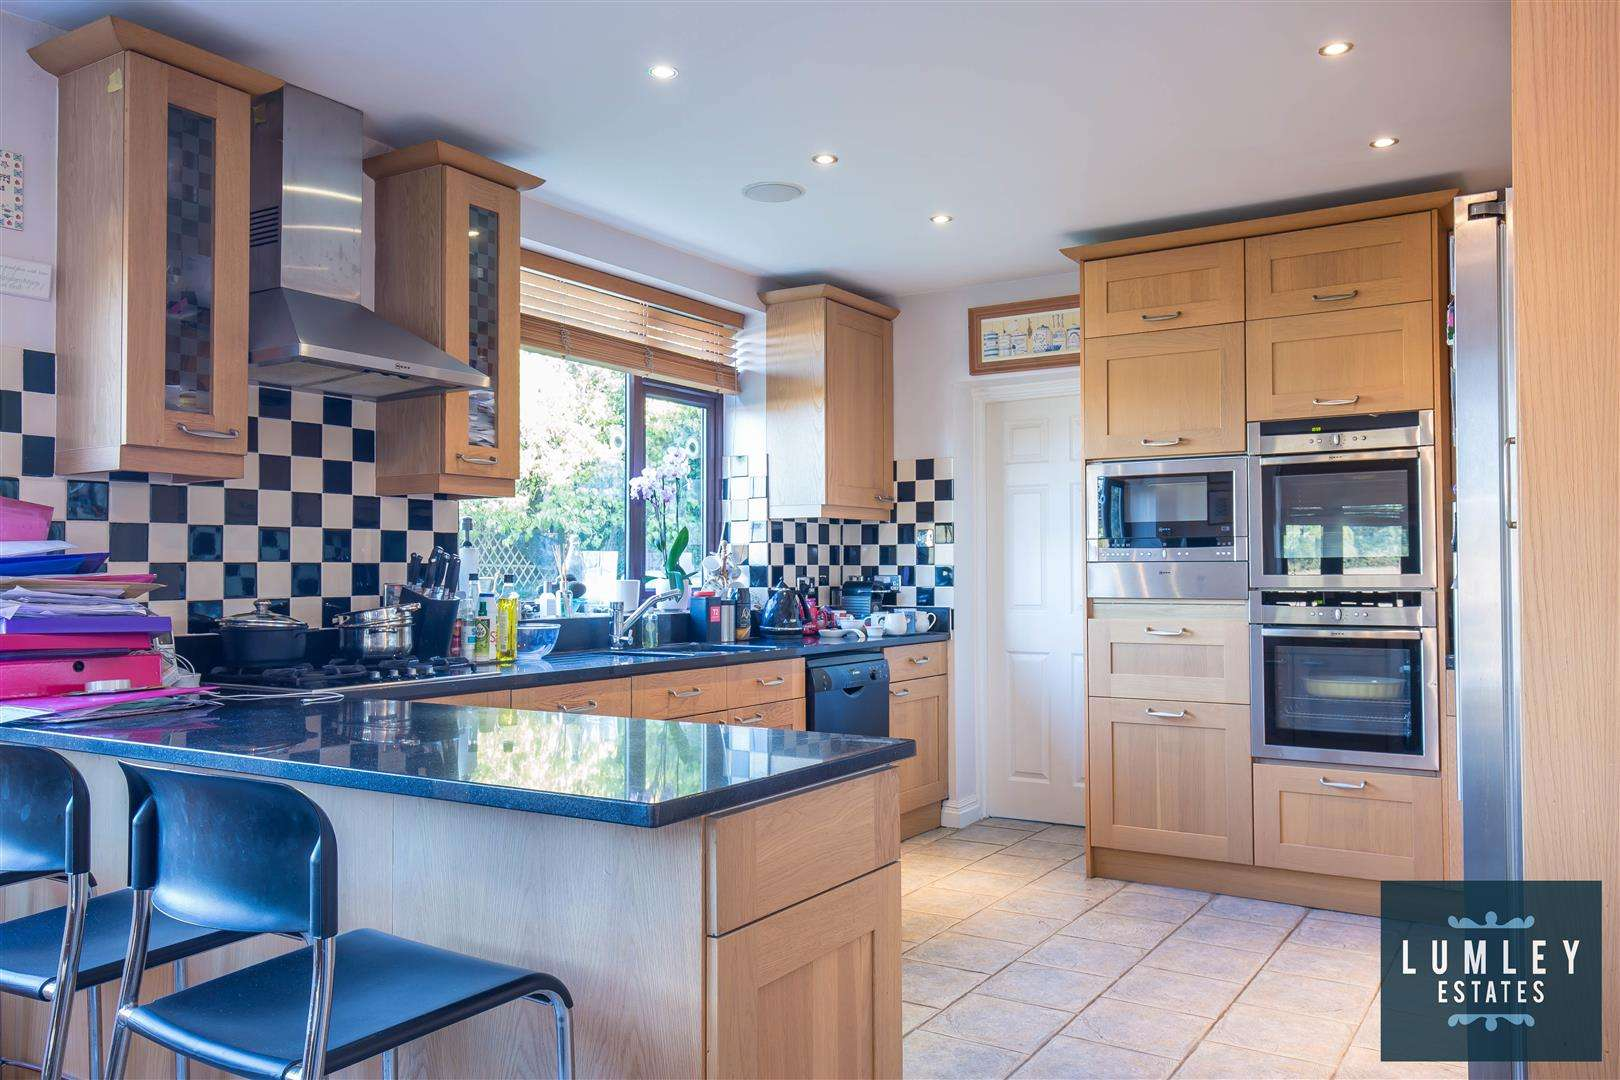 6 bed to rent - (Property Image 4)